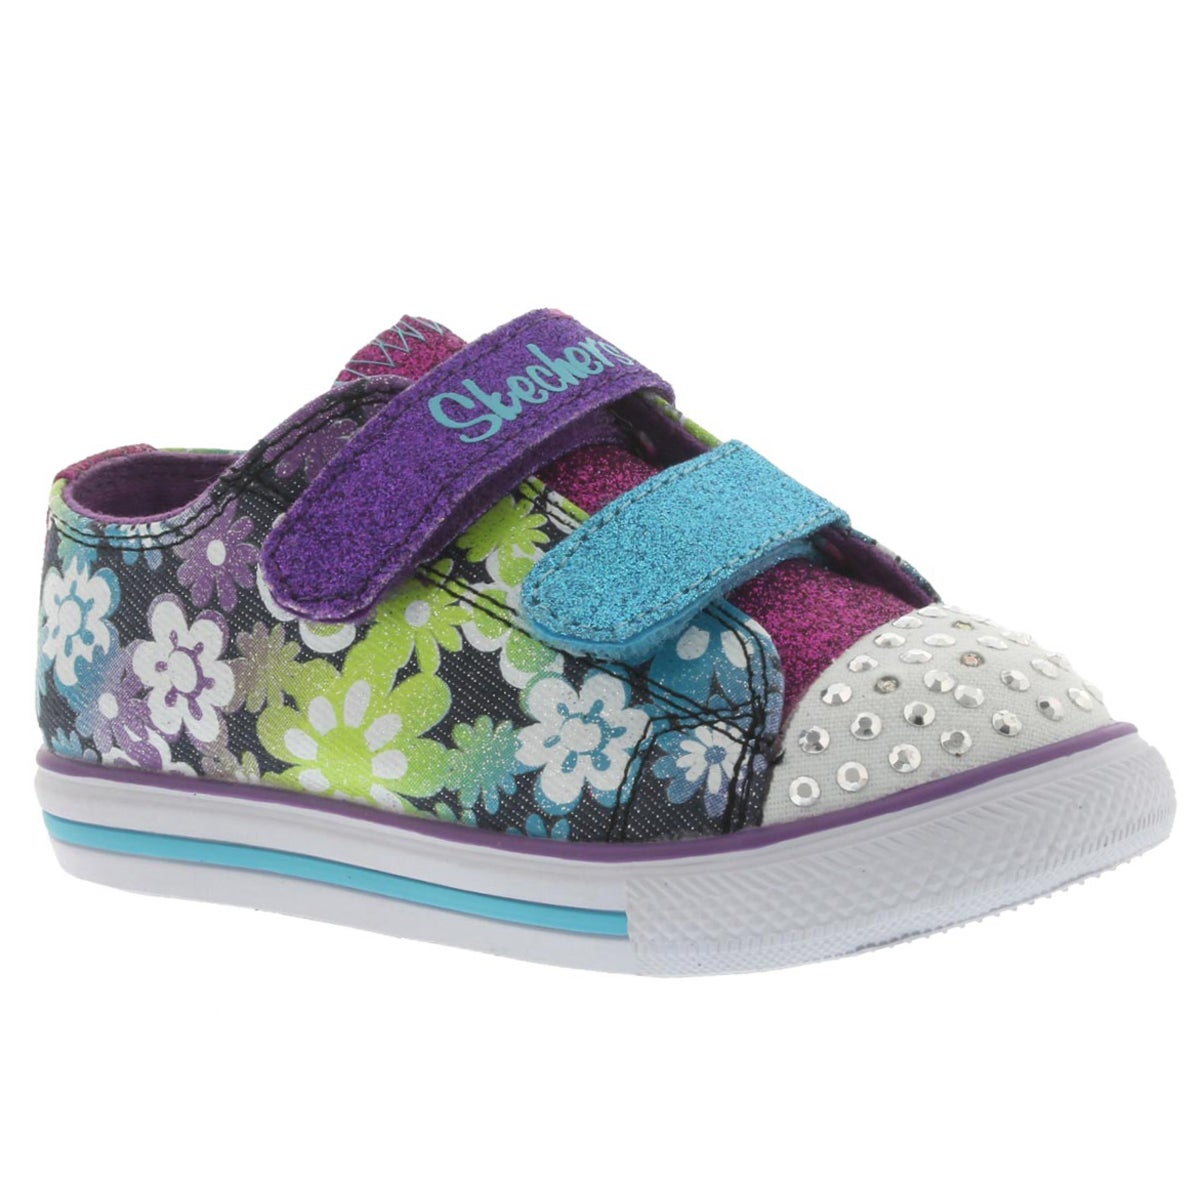 Infants' CHIT CHAT multi flower print sneakers